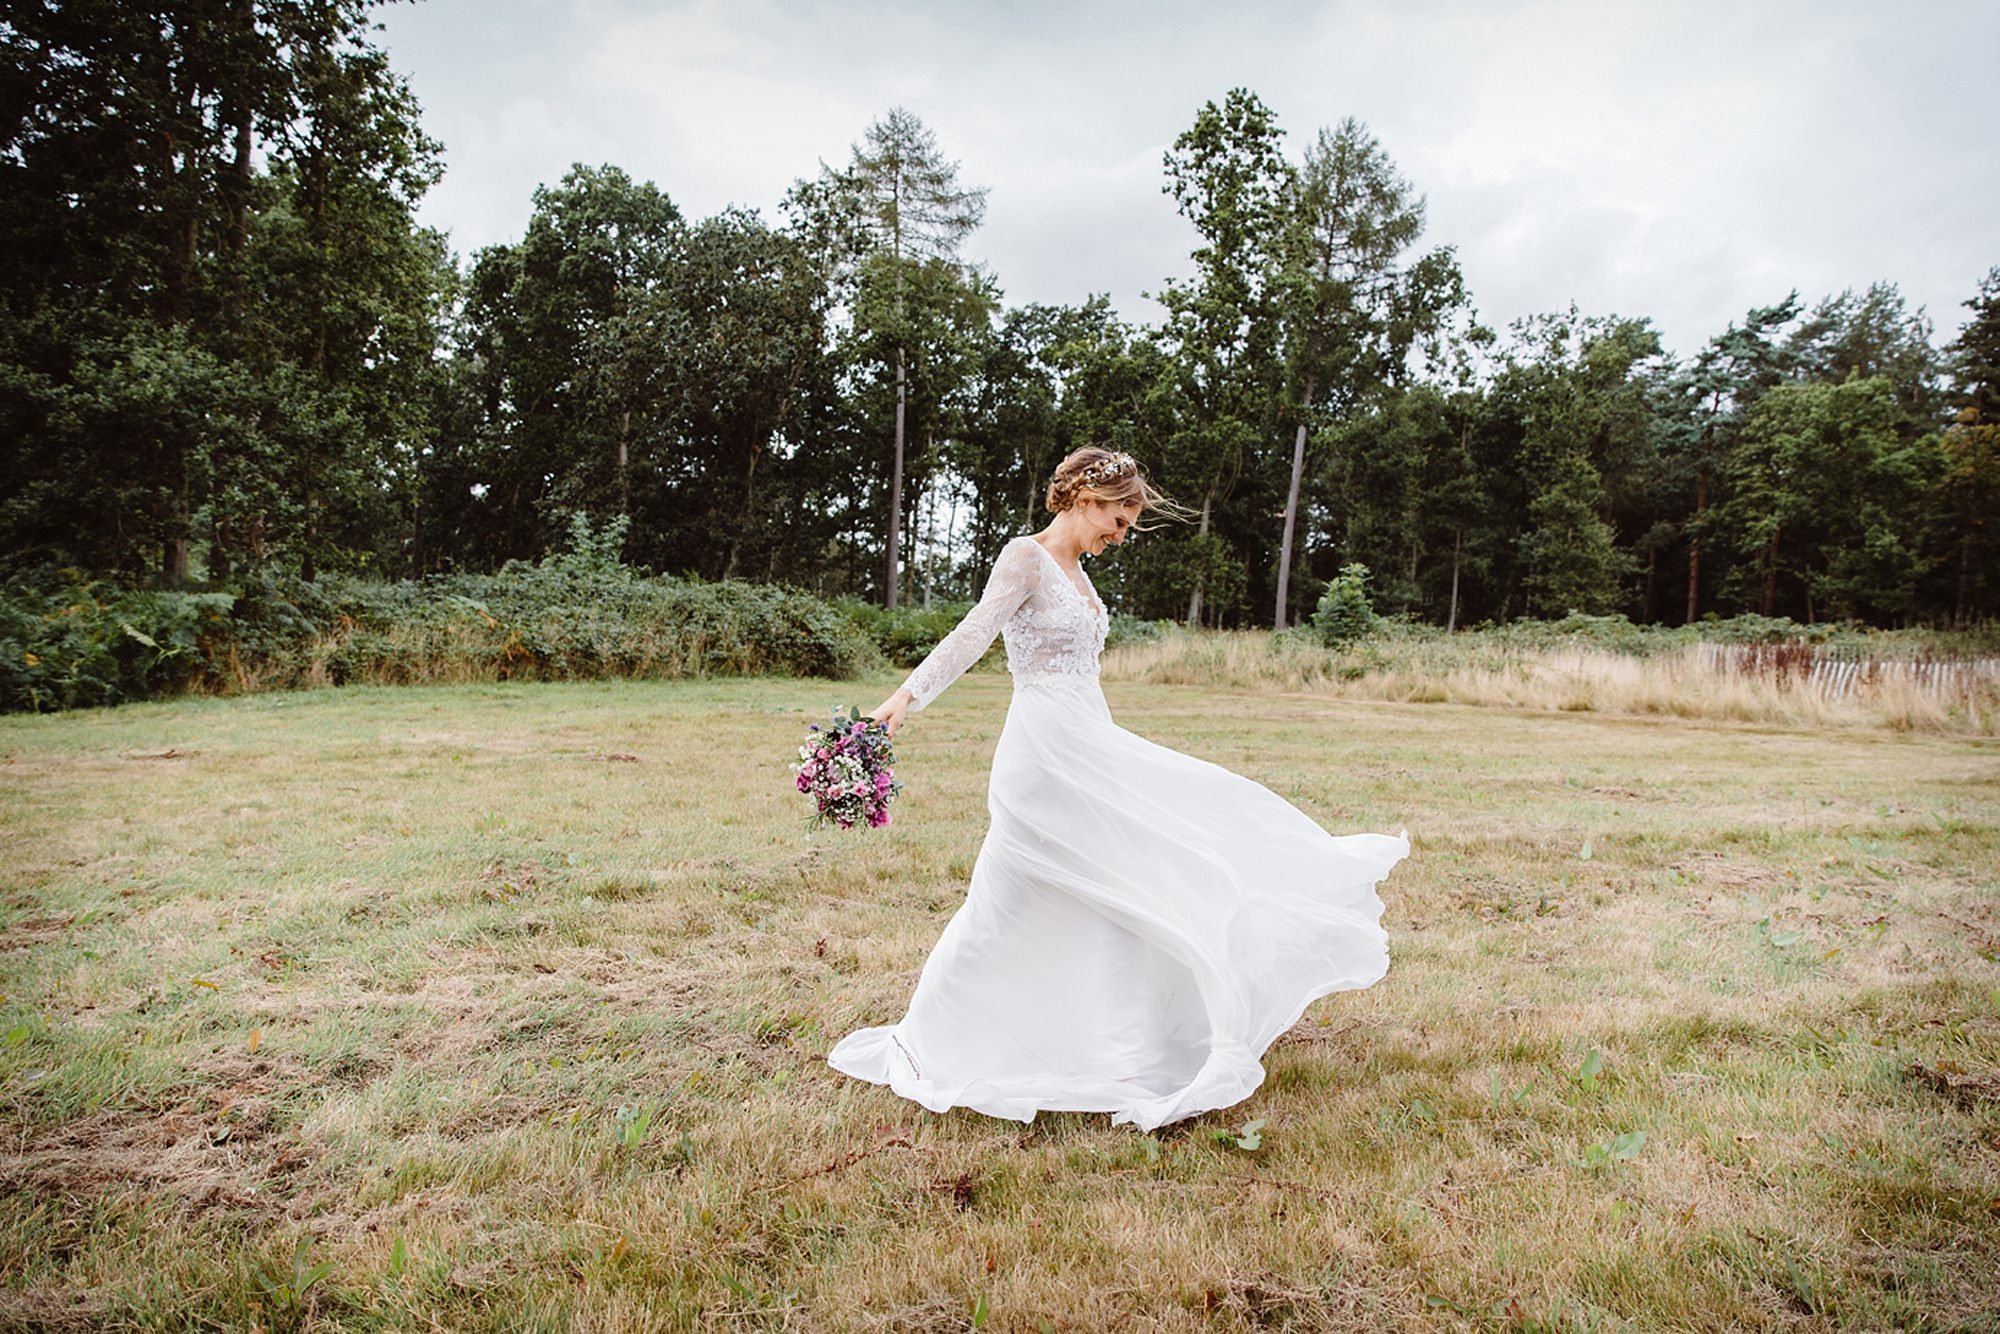 Marks Hall Estate wedding photography bride with her wedding dress blowing in the wind